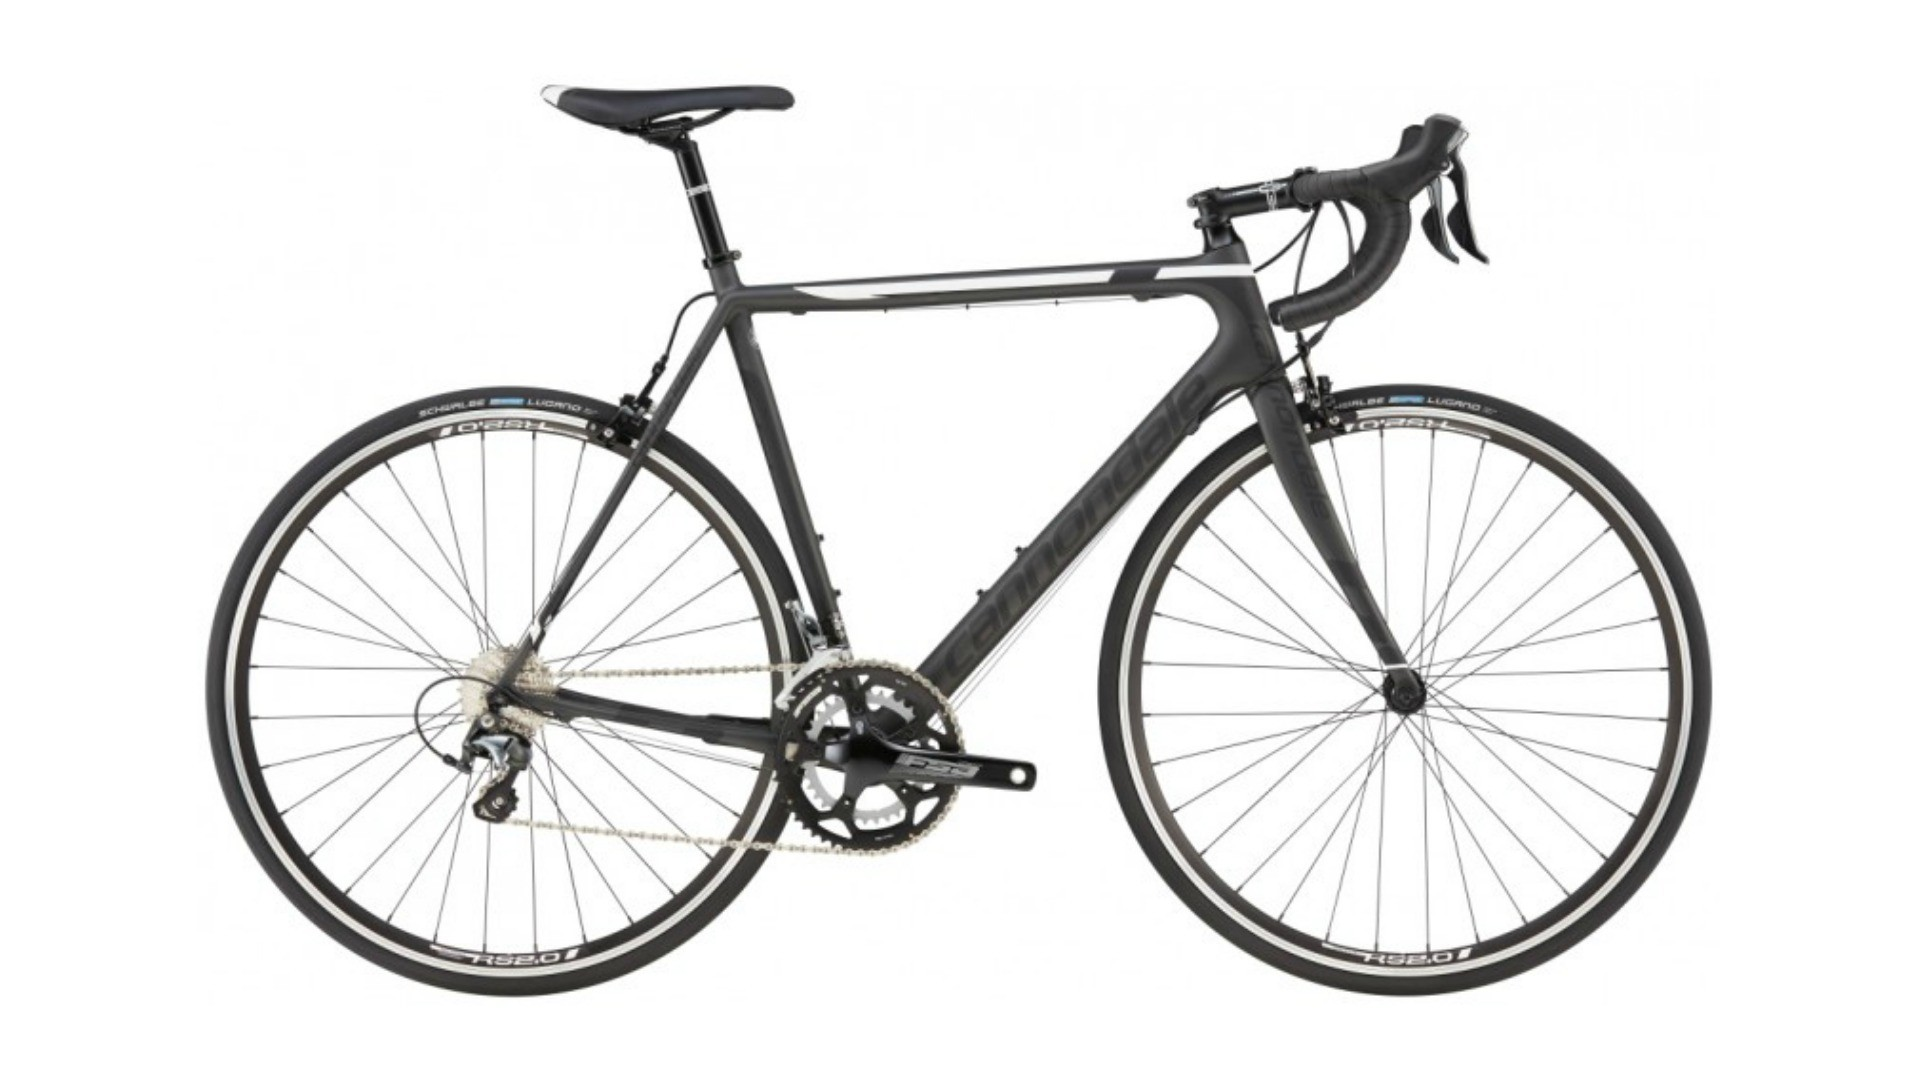 A Cannondale bike for road use or a spot of commuting